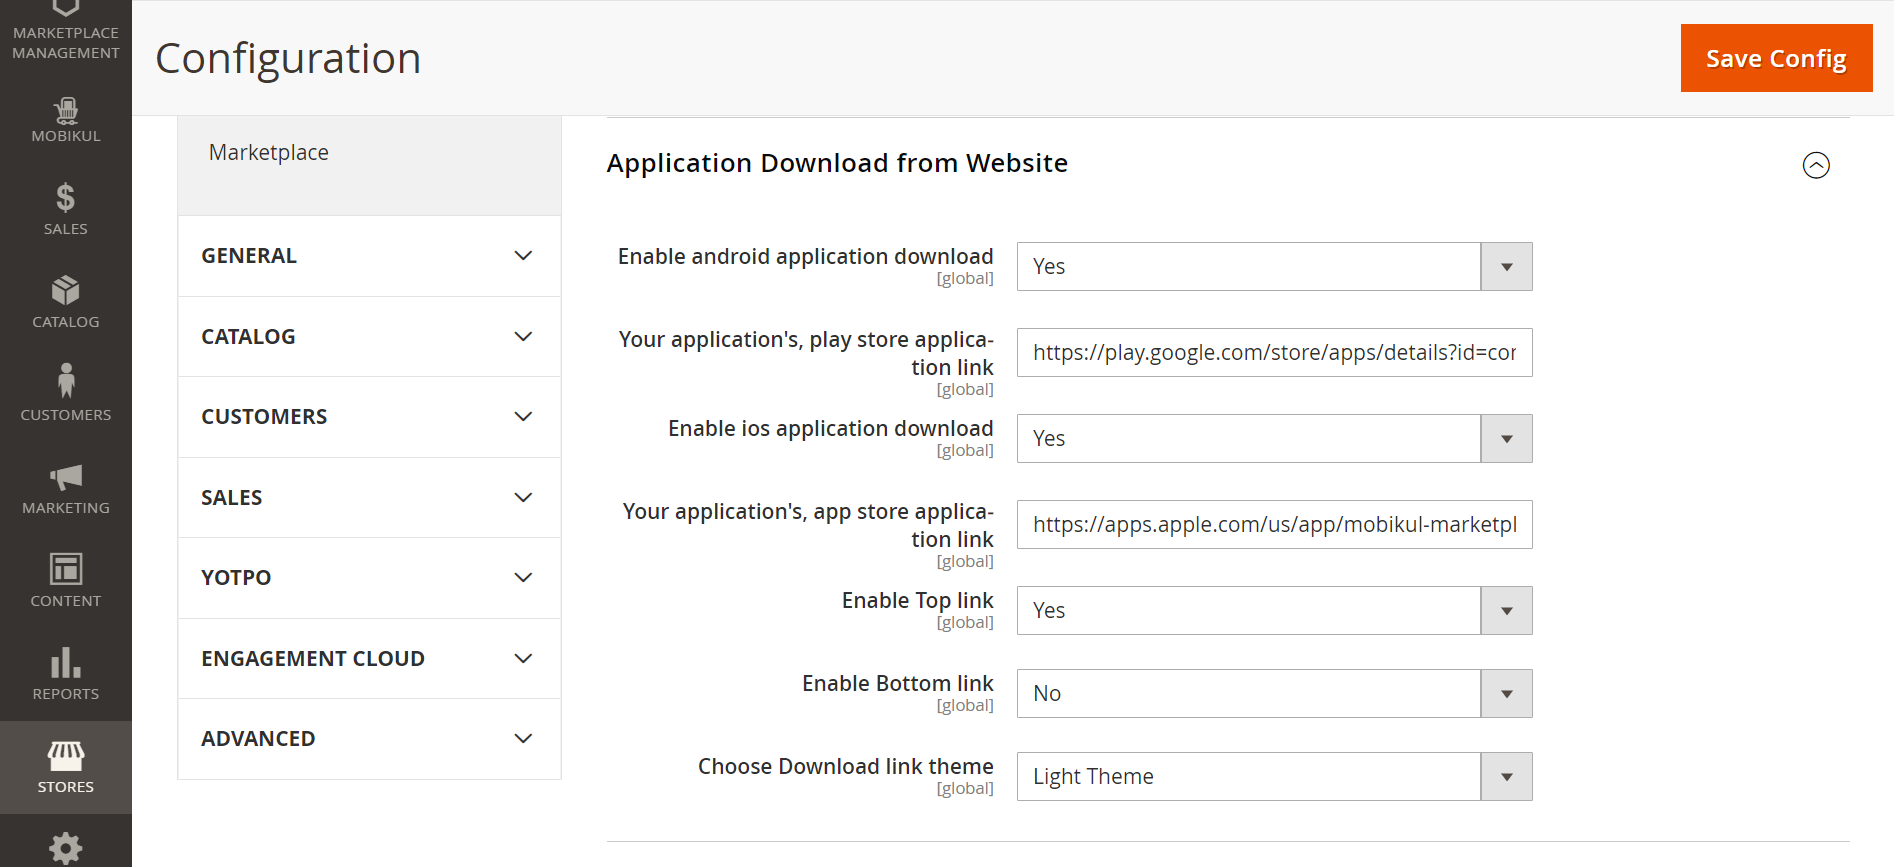 Application download from website